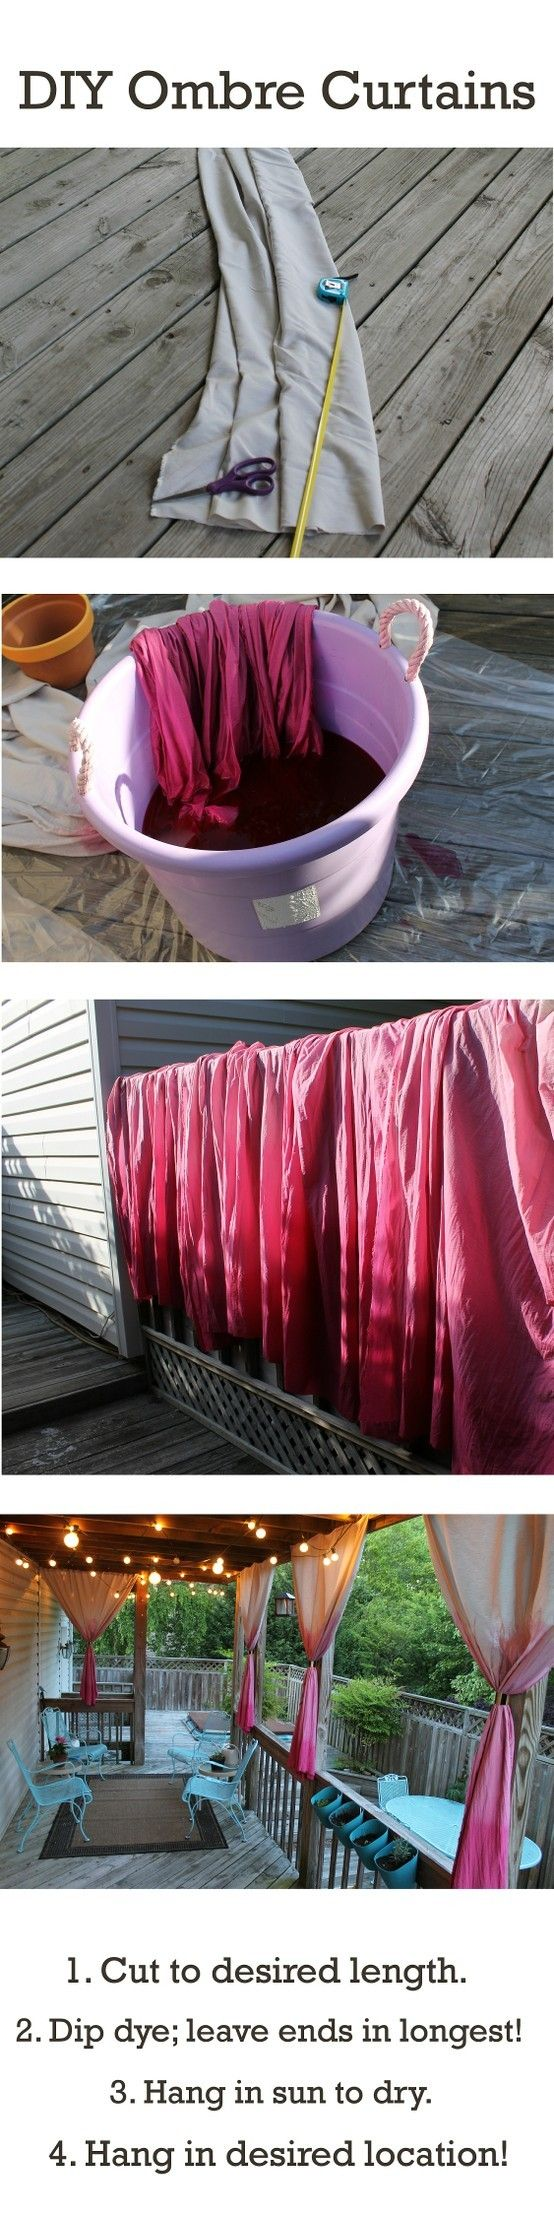 I like the idea of the curtains on the deck. It adds such a soft effect. Add lights and it's perfect decor for your outdoor deck, gazebo or pergola.